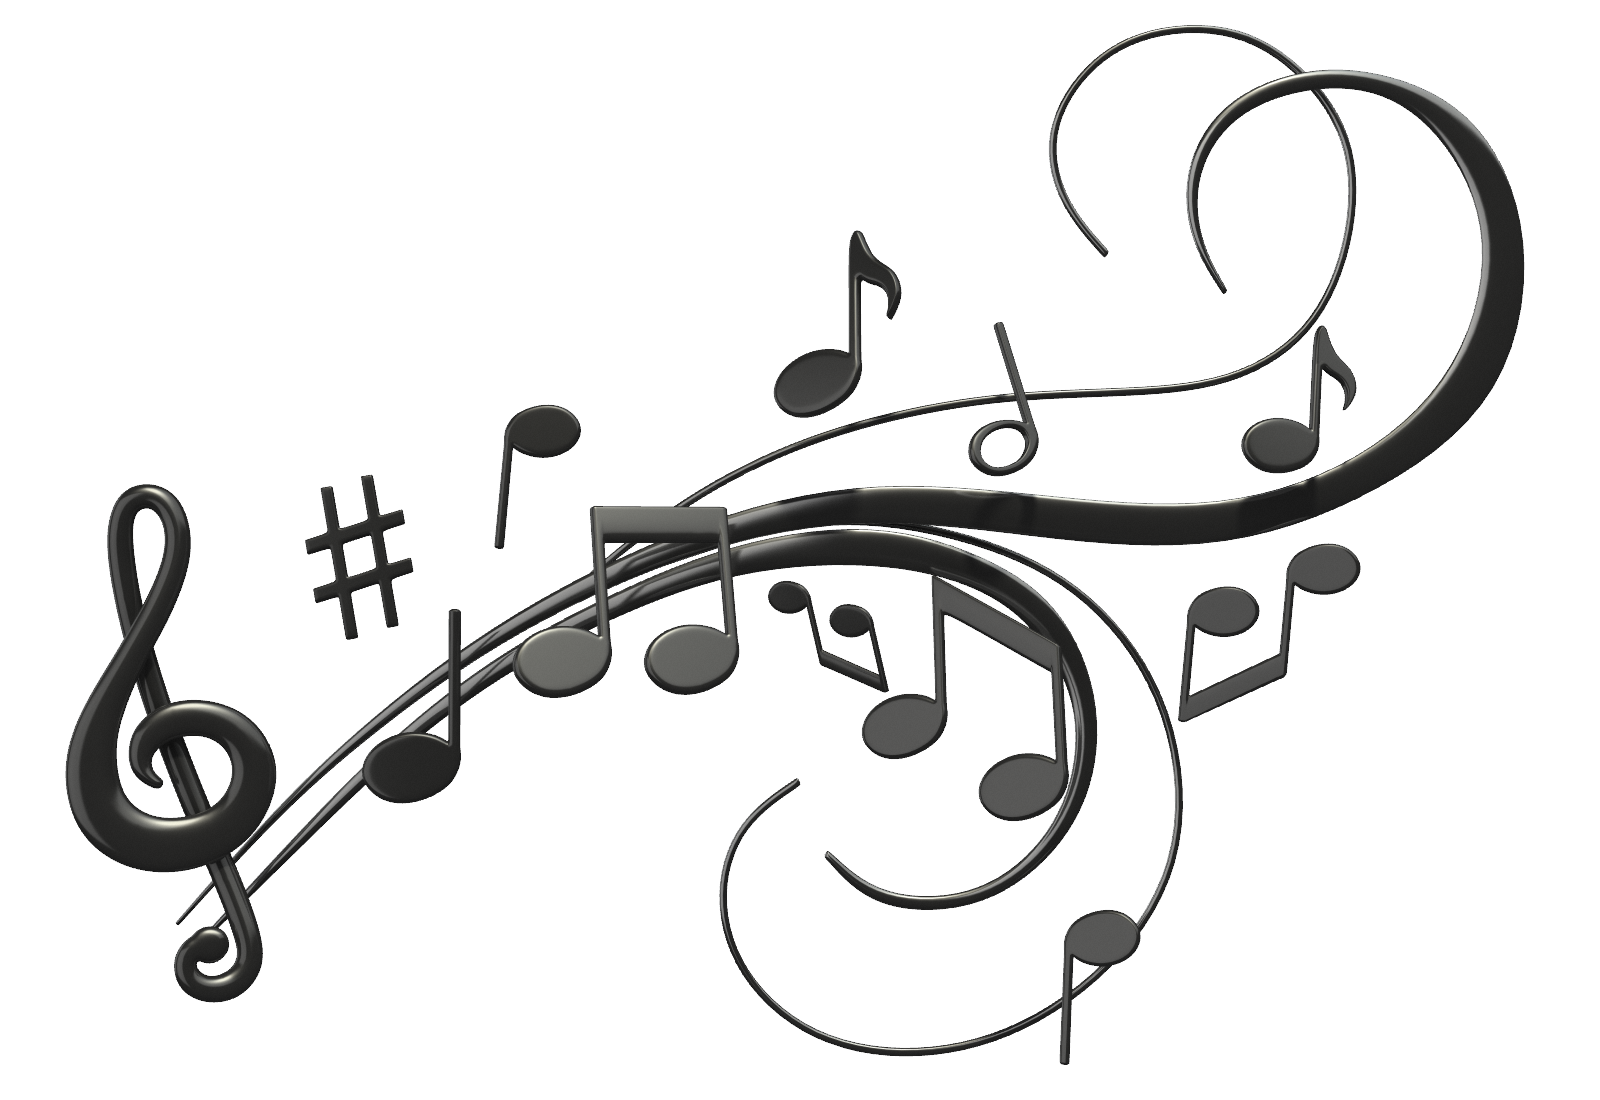 Music notes icon clipart web icons png best free music notes high quality png voltagebd Images